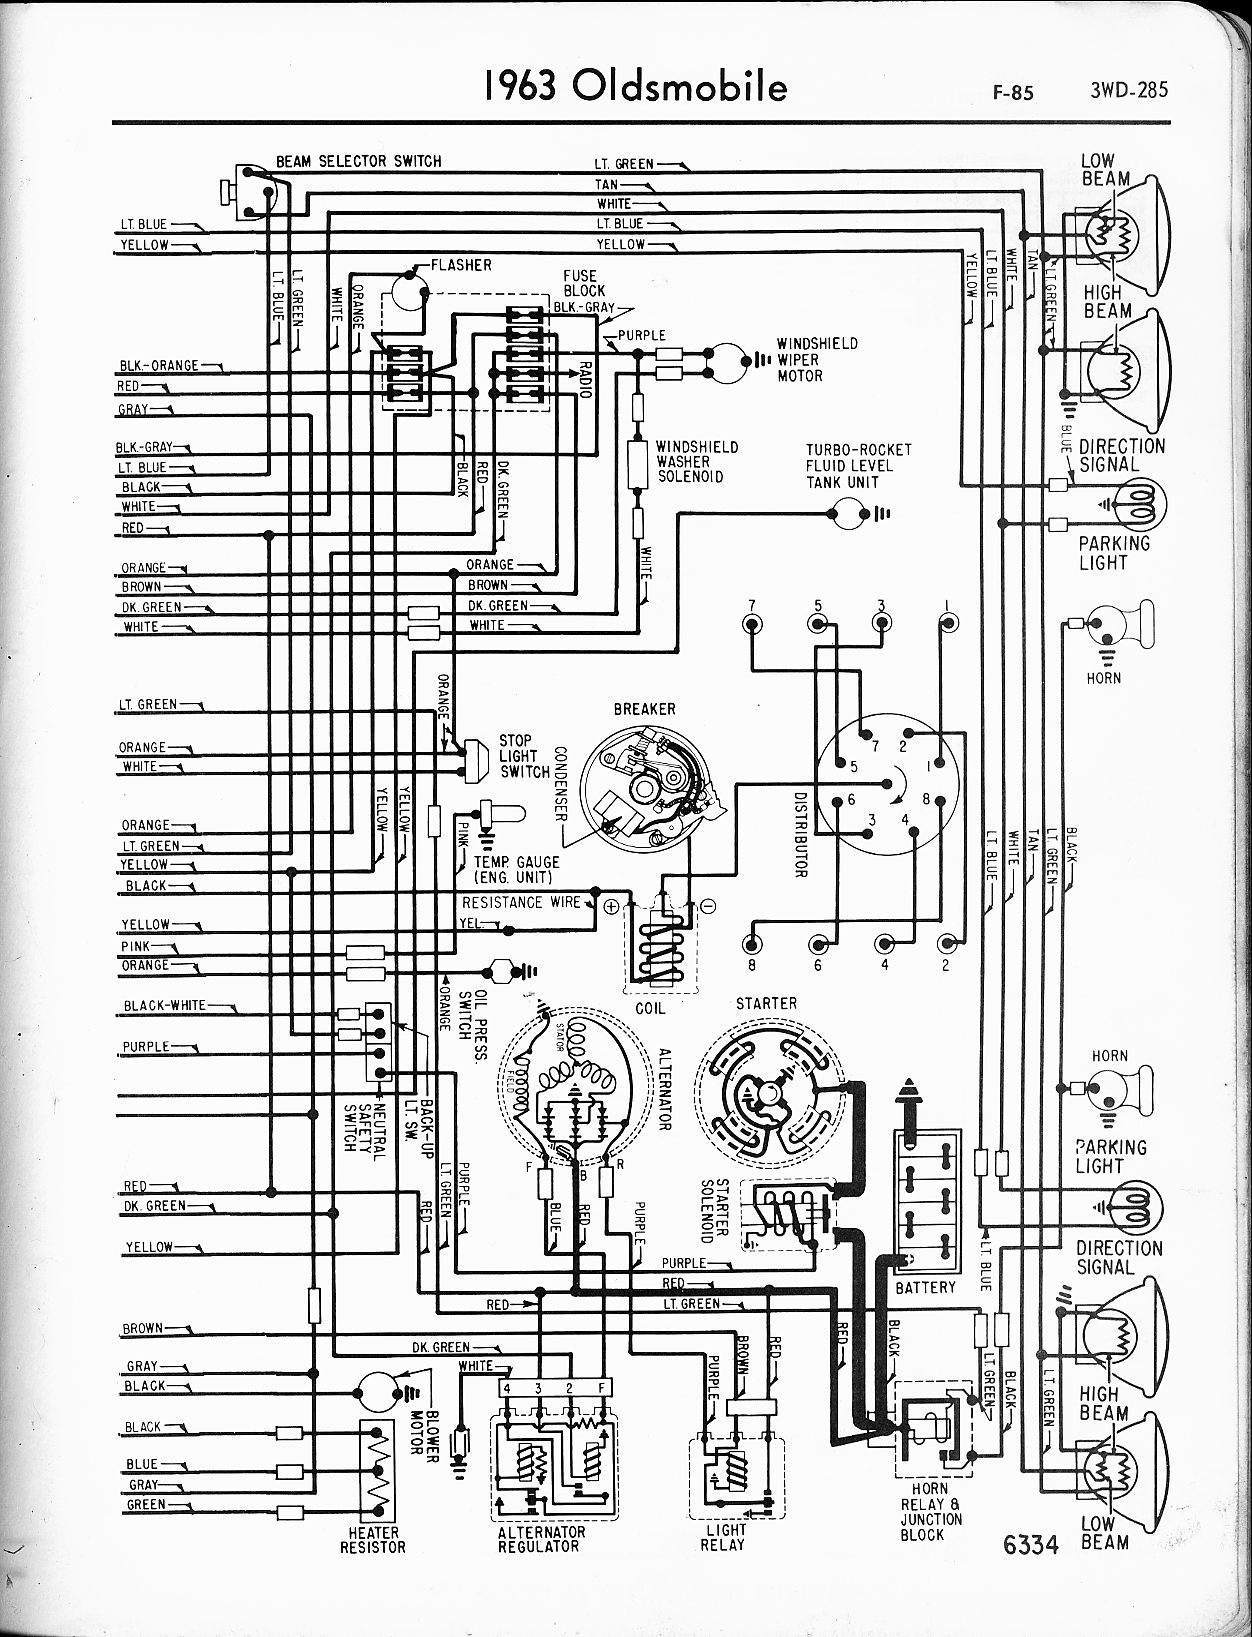 1995 Oldsmobile Silhouette Wiring Diagram Opinions About Minn Kota Power Drive Schematic Diagrams The Old Car Manual Project Rh Oldcarmanualproject Com 1993 1969